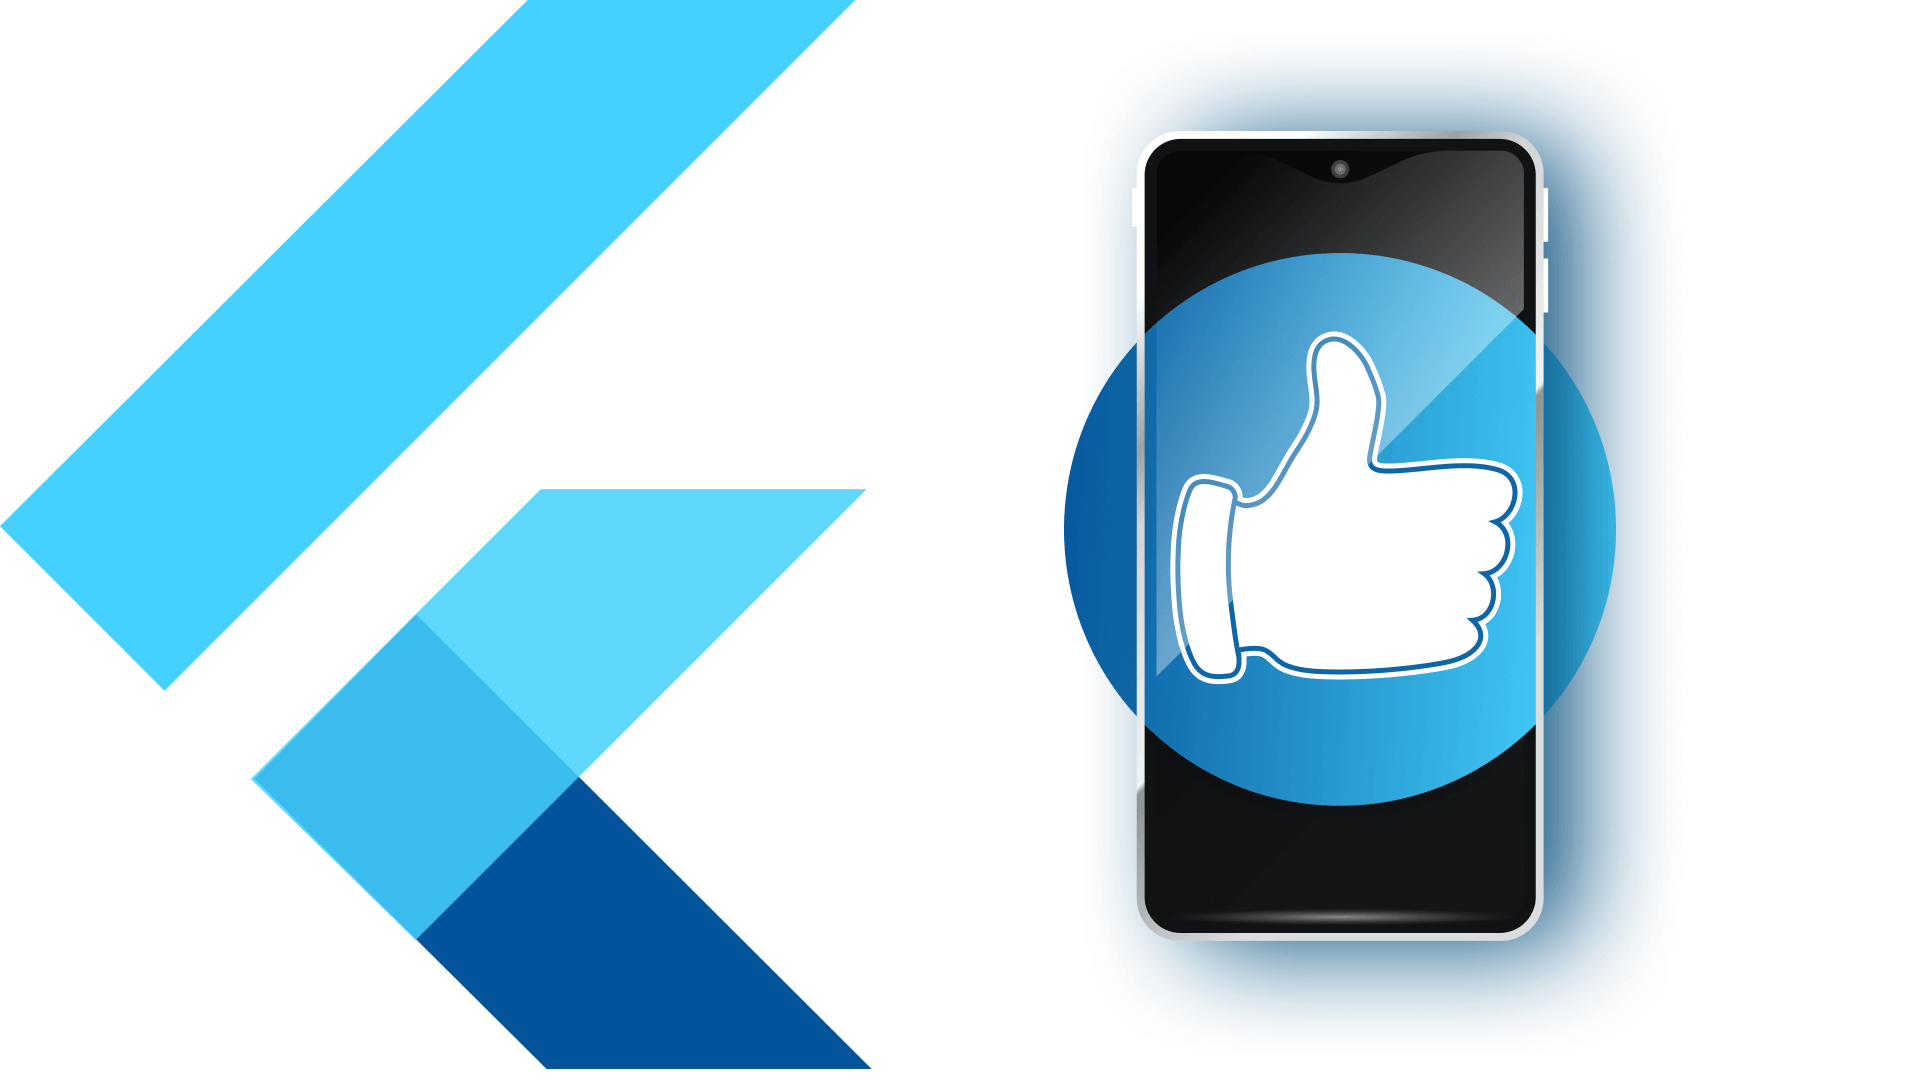 The pros you will get if going for Flutter app development.